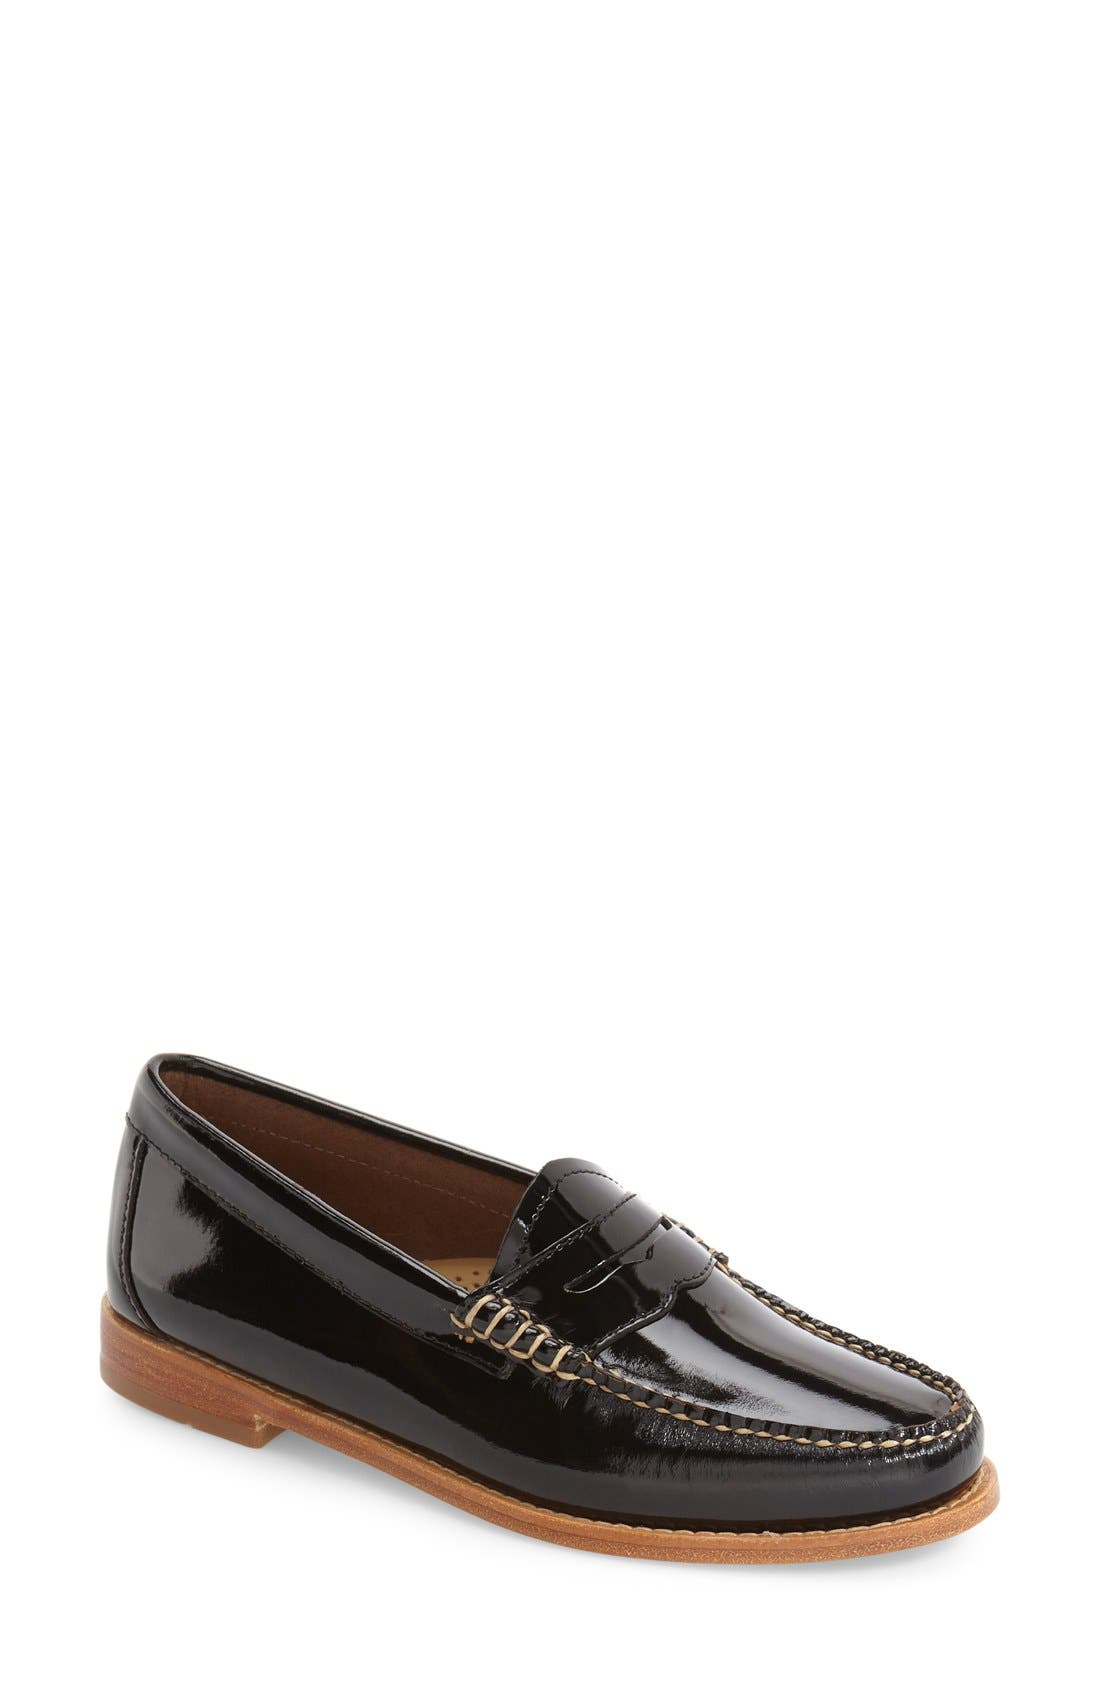 'Whitney' Loafer,                             Main thumbnail 21, color,